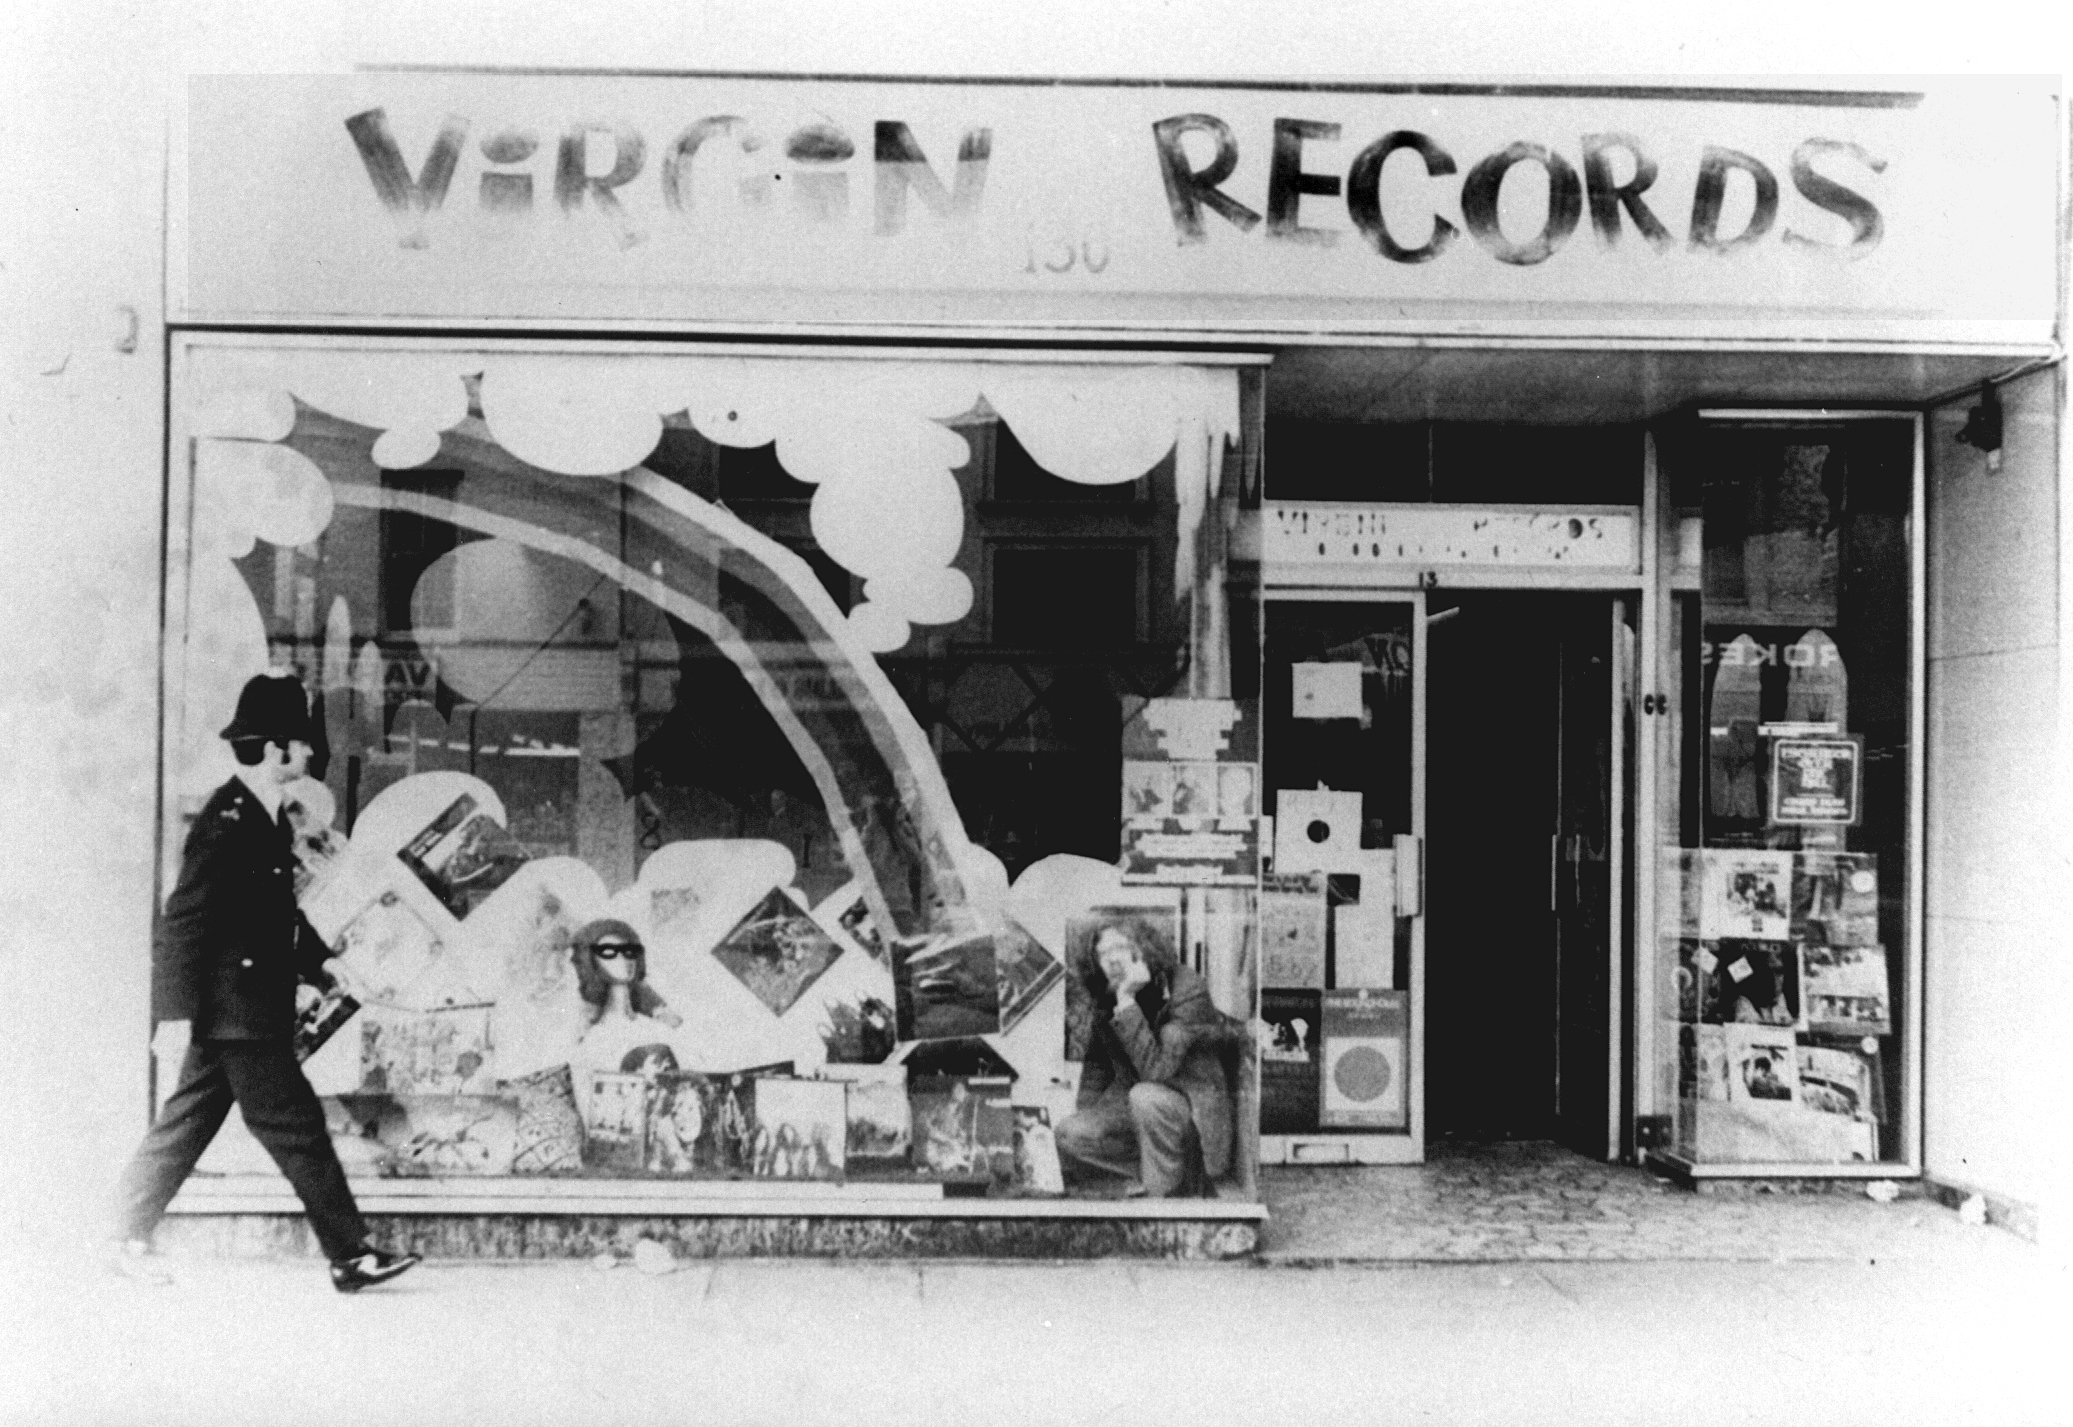 The Virgin Records store in Notting Hill